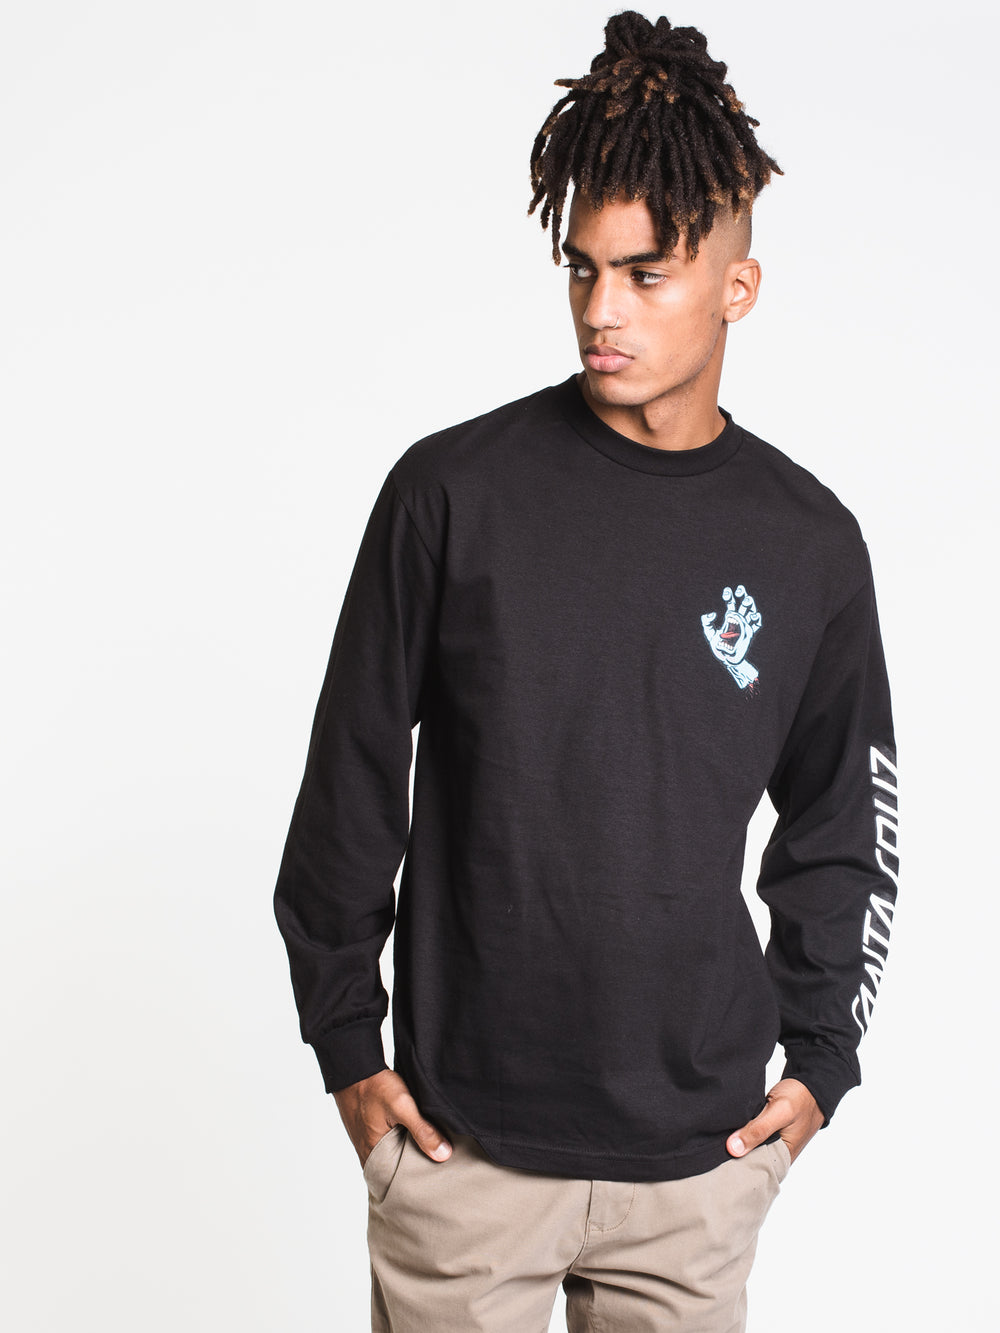 MENS SCREAMING HAND LONG SLEEVE TEE - BLACK